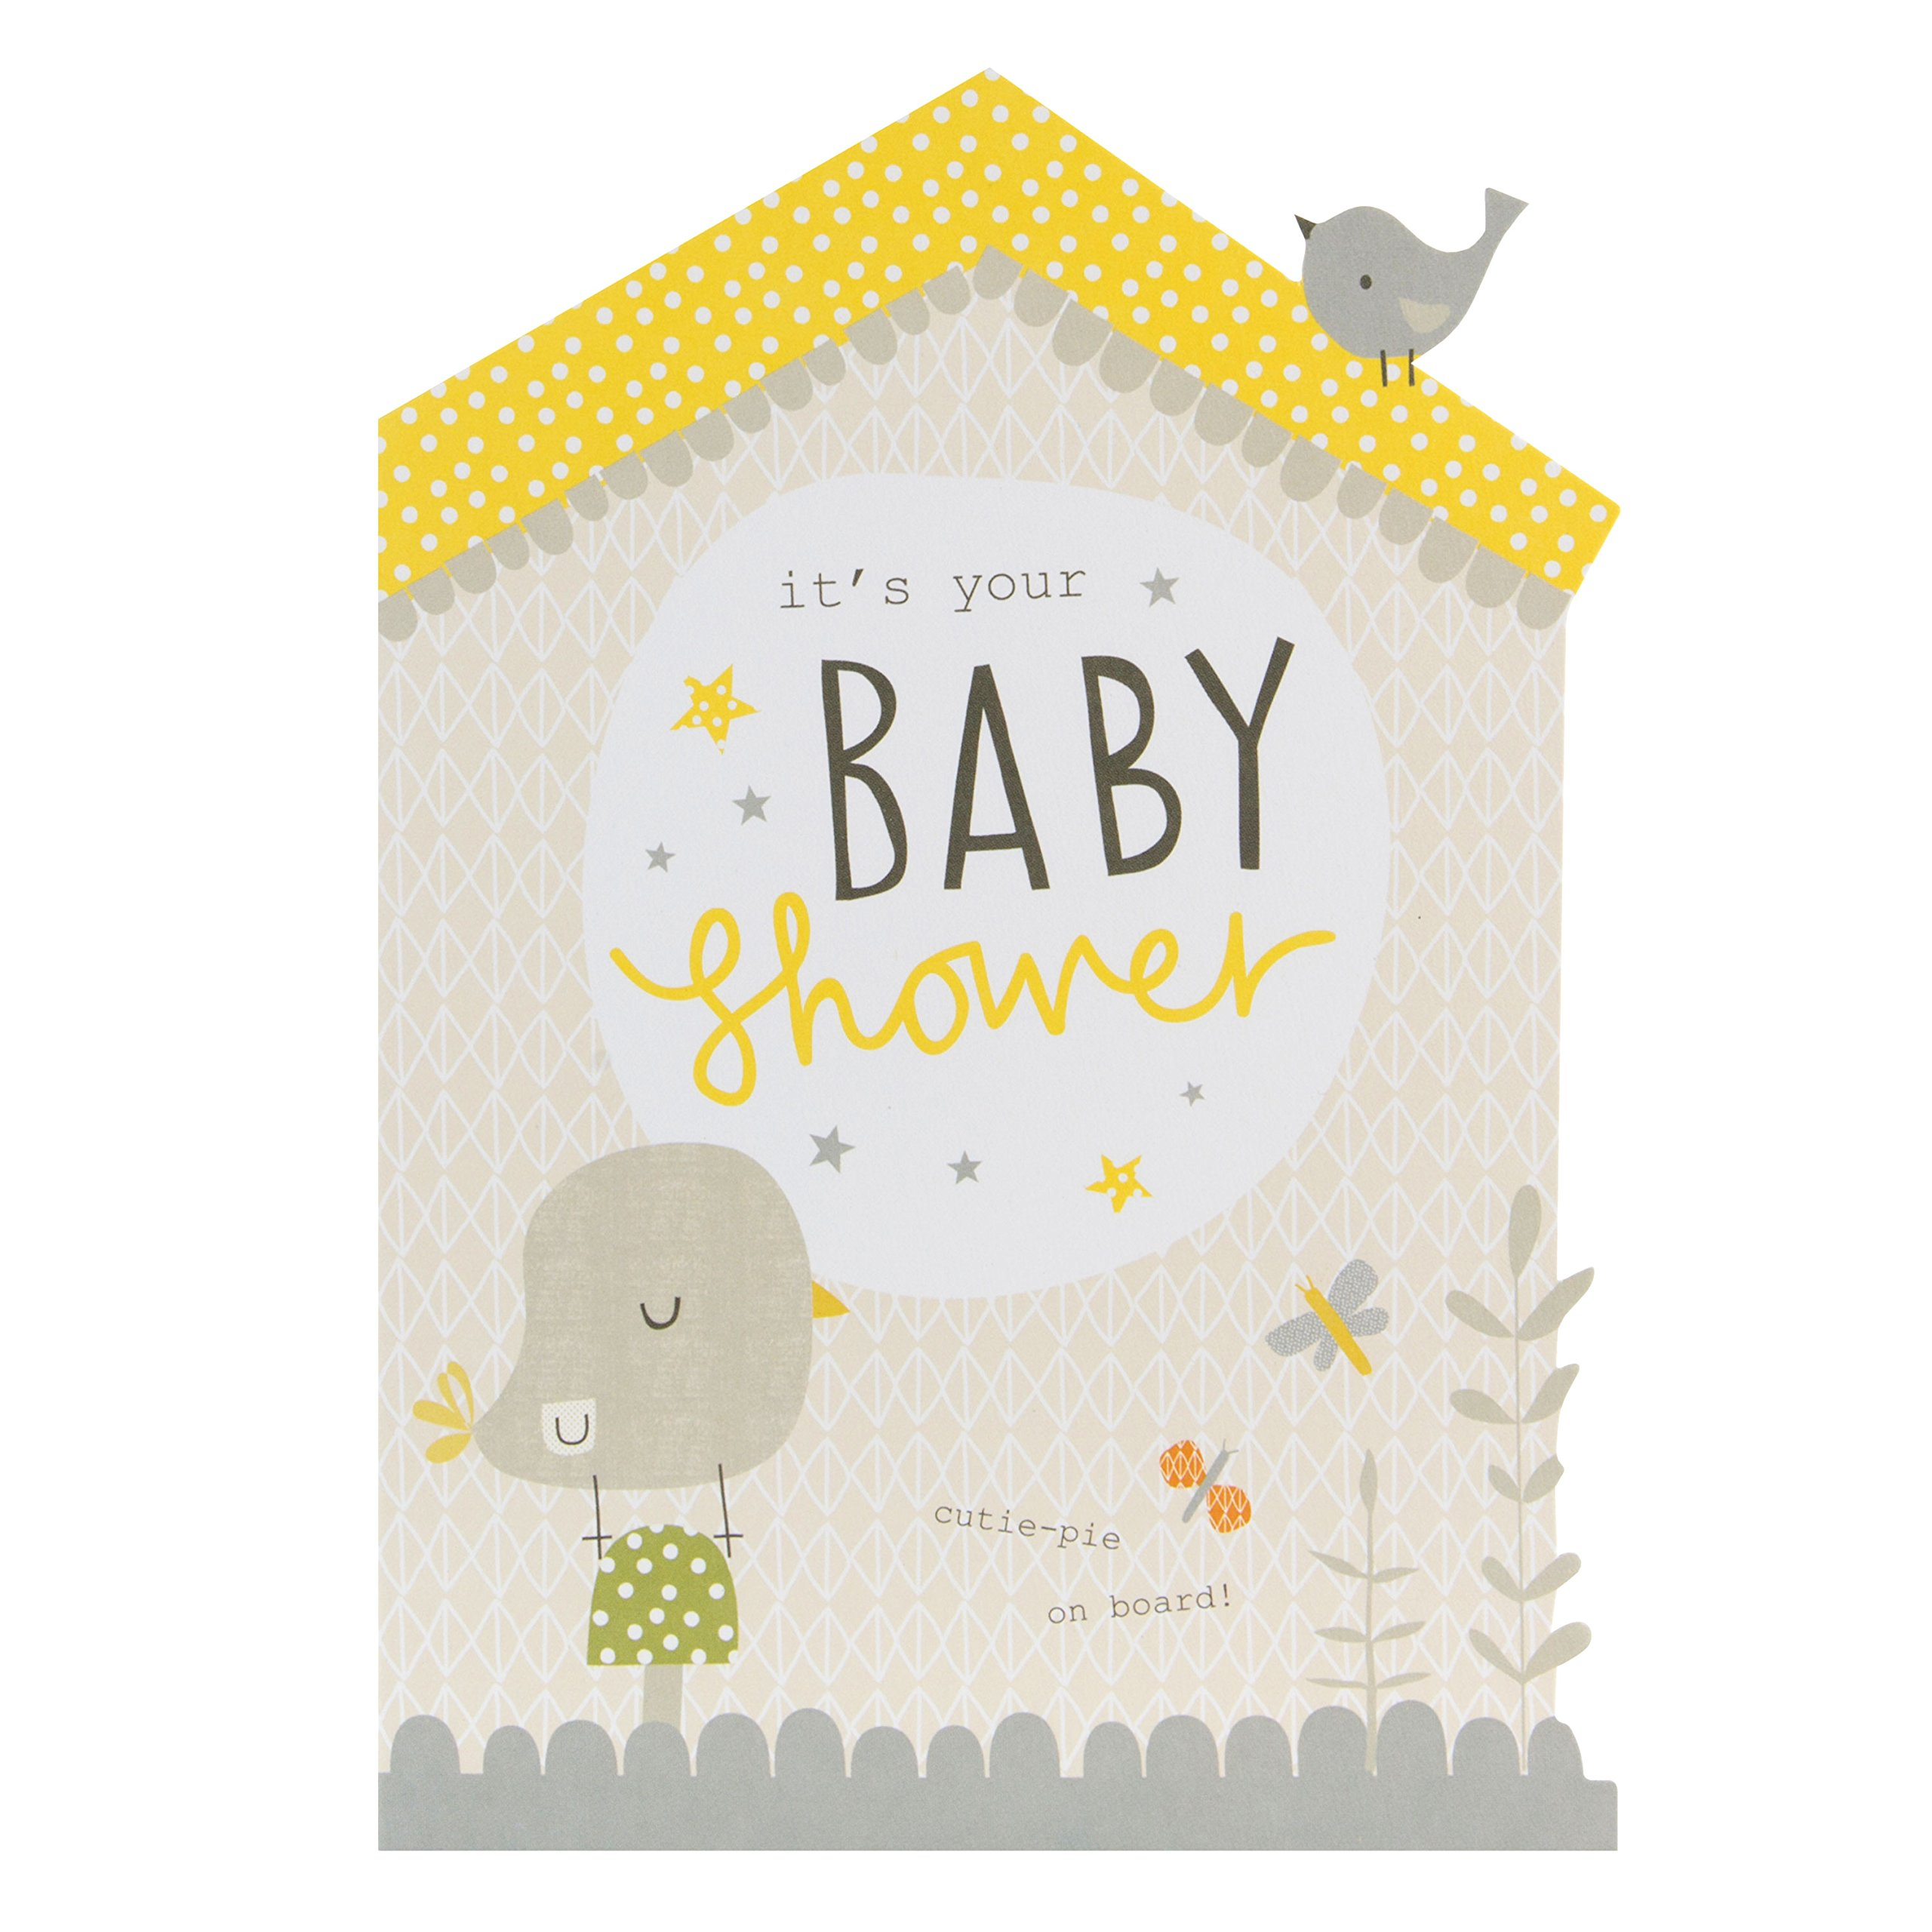 hallmark baby shower card cutie pie on board